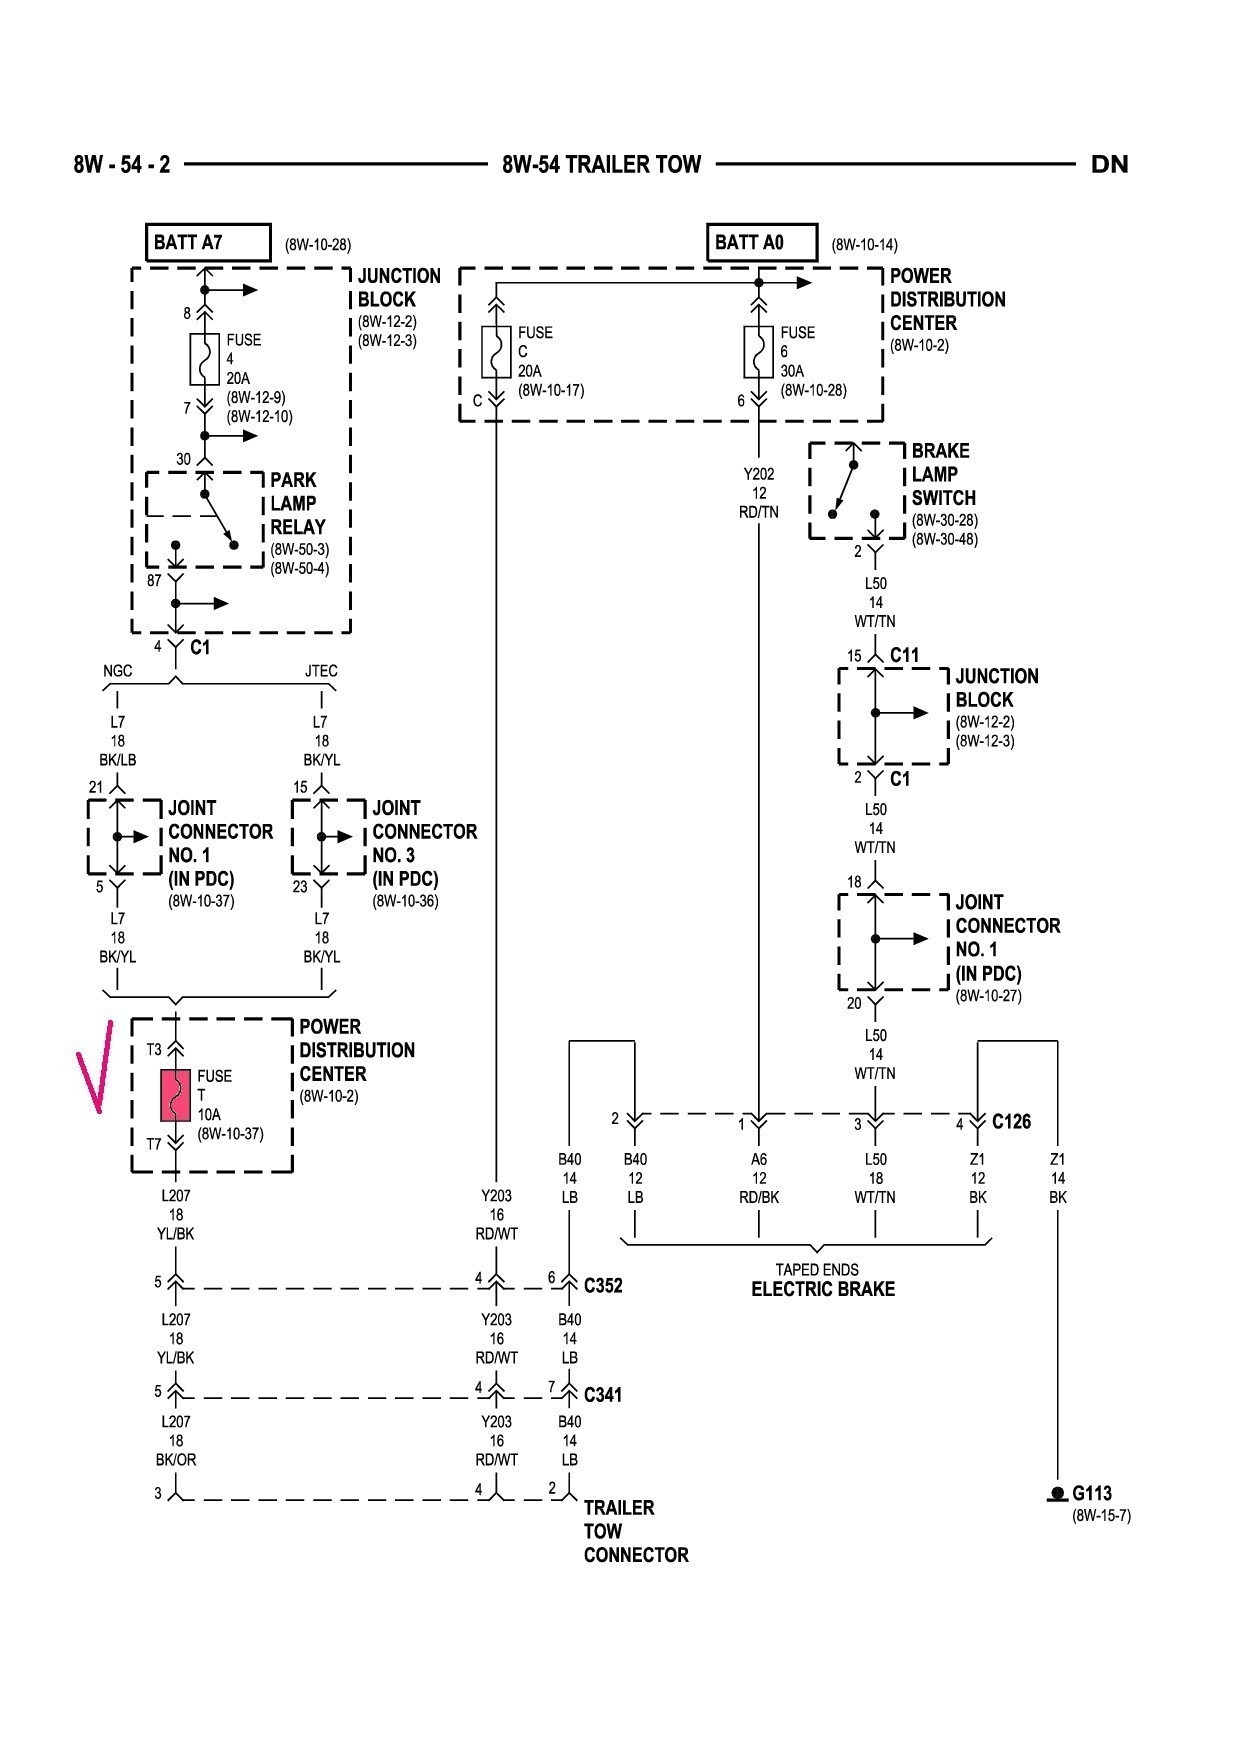 1998 dodge ram 2500 wiring harness 1998 dodge dakota headlight switch wiring diagram | free ... 1998 dodge ram 2500 stereo wiring diagram #15